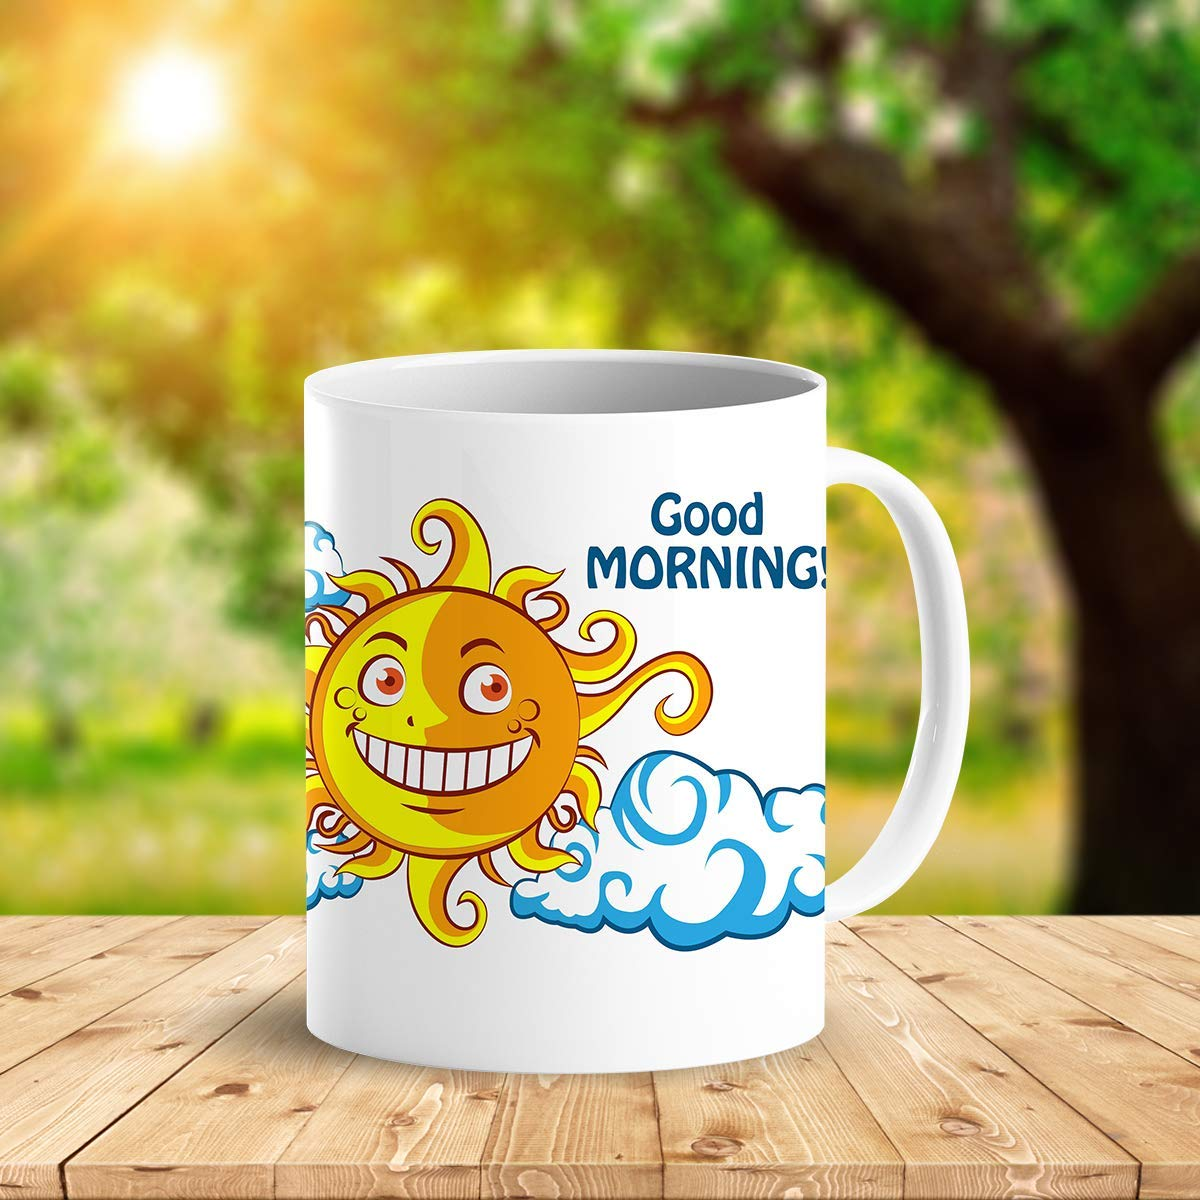 Heat Sensitive Color Changing Coffee Mug Funny Coffee Cup NightDay MoonSun Design Funny Gift Idea B07D223C62 2